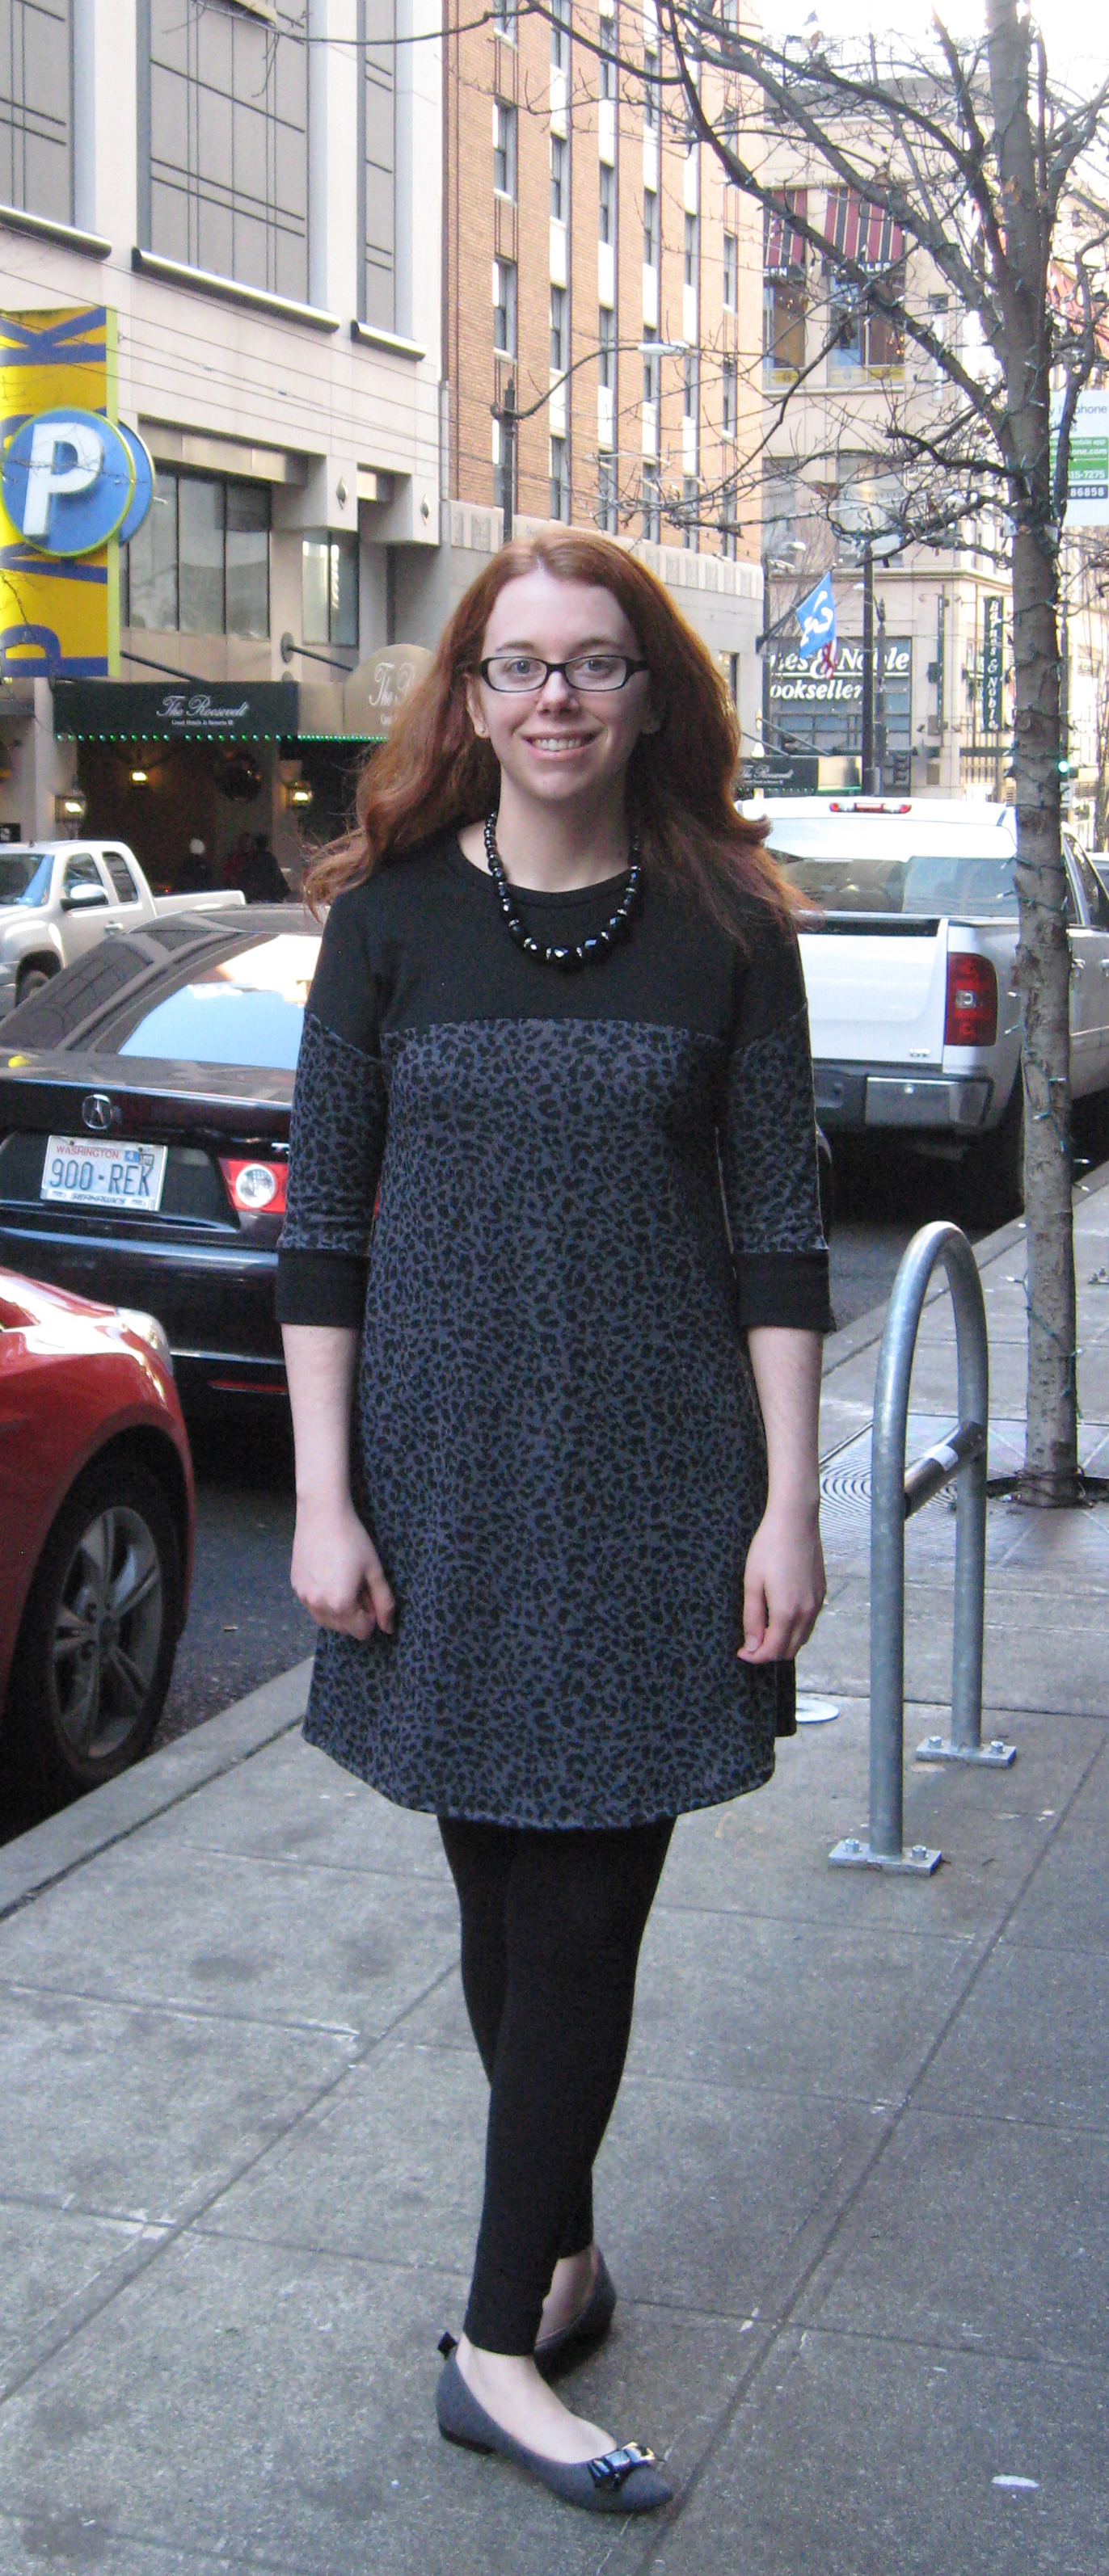 Completed Marianne Dress in Leopard and Black Ponte Knits